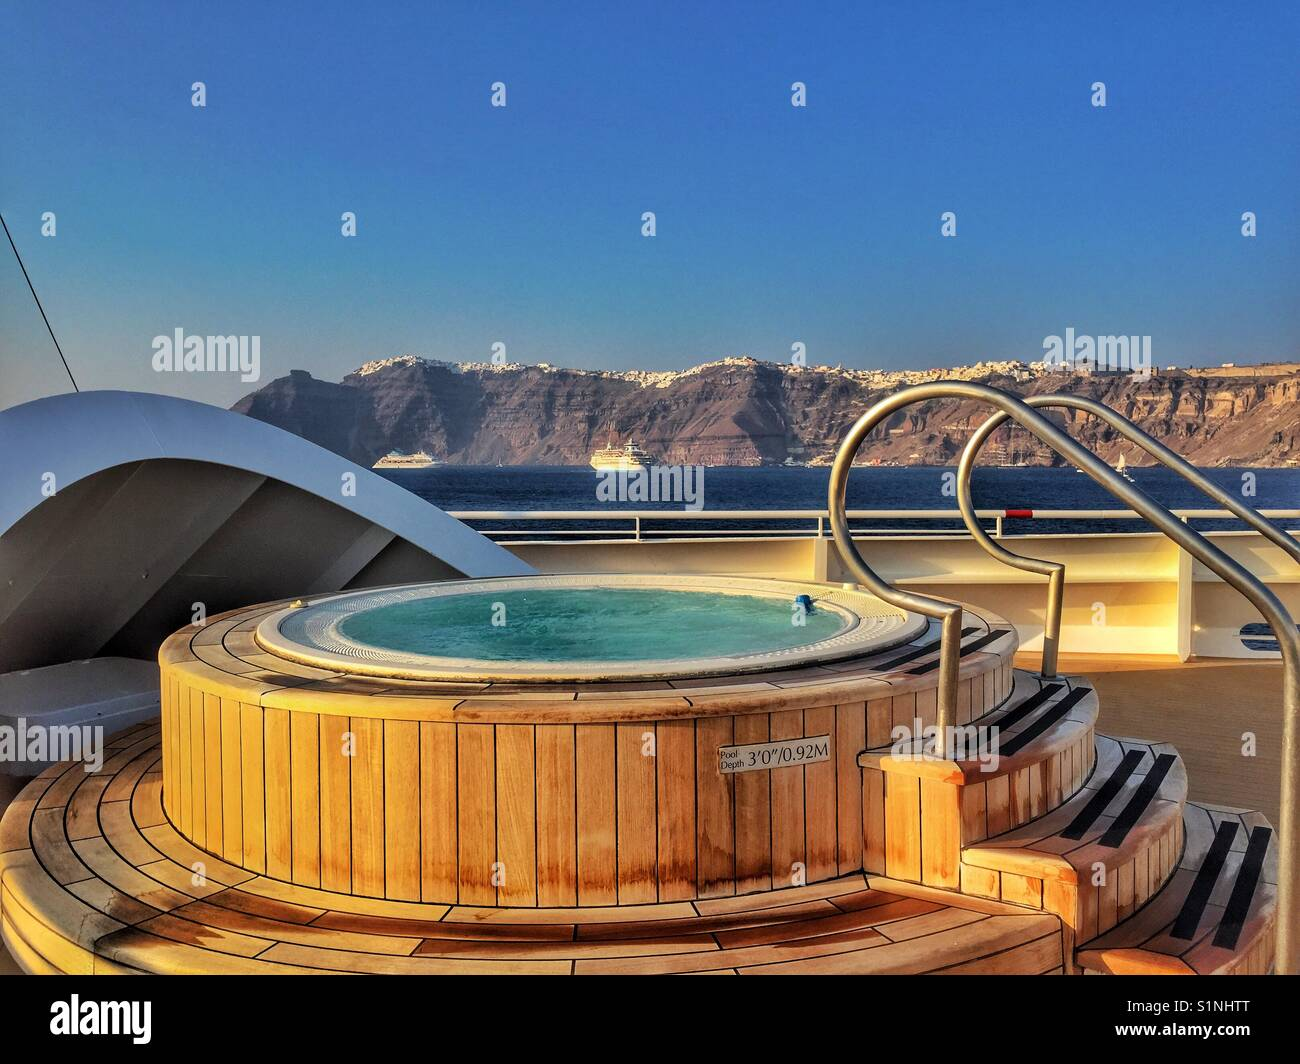 Jacuzzi with a view - Stock Image